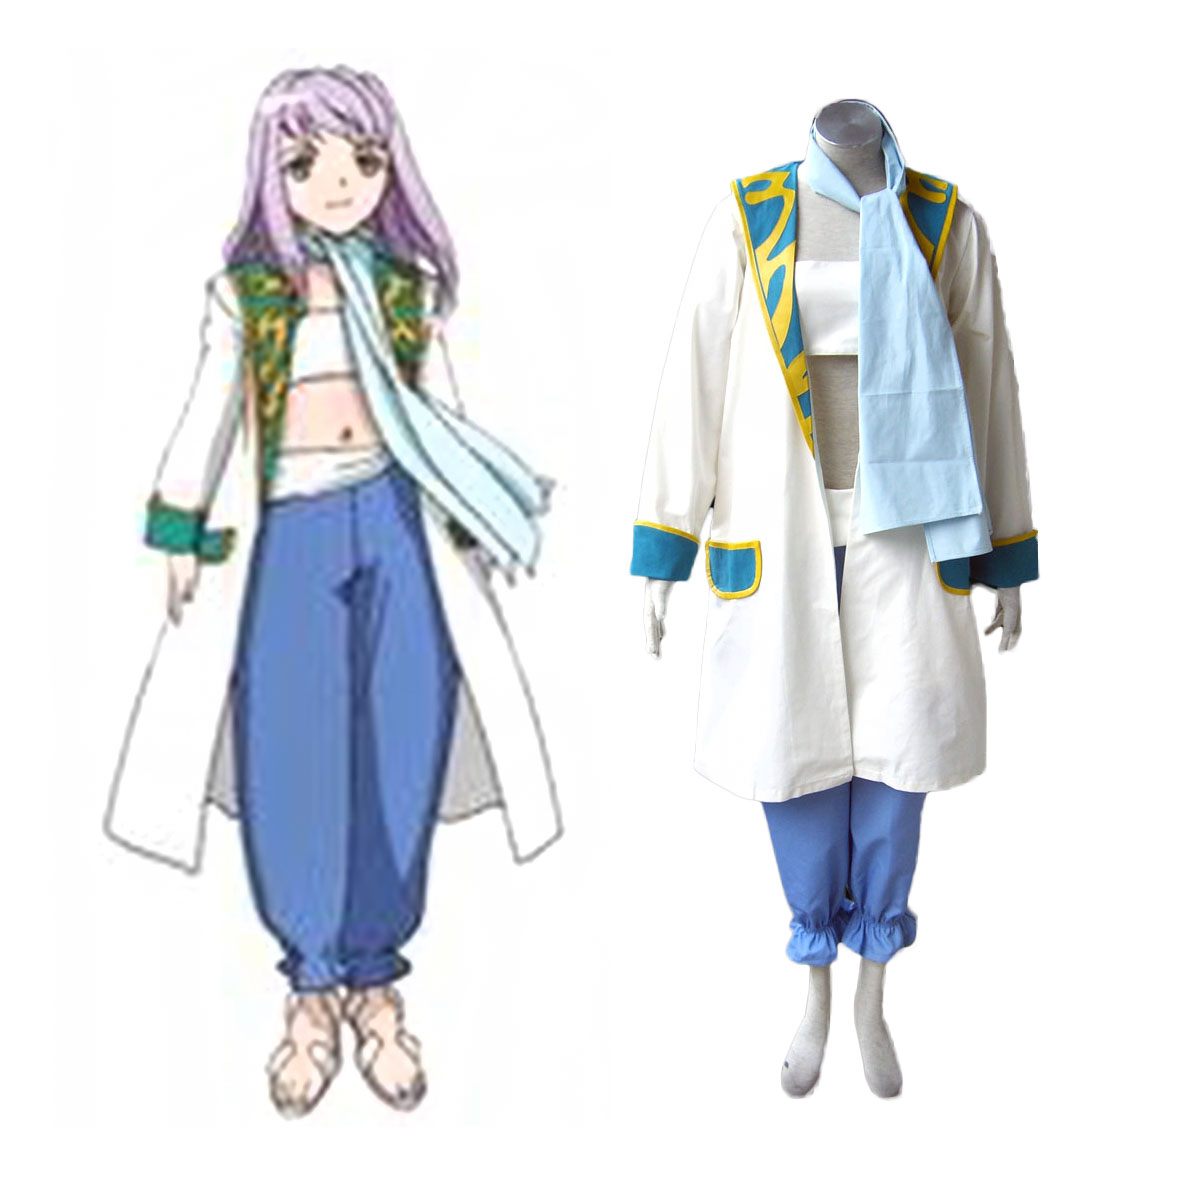 My-Otome Mashiro Blan de Windbloom Cosplay Costumes AU